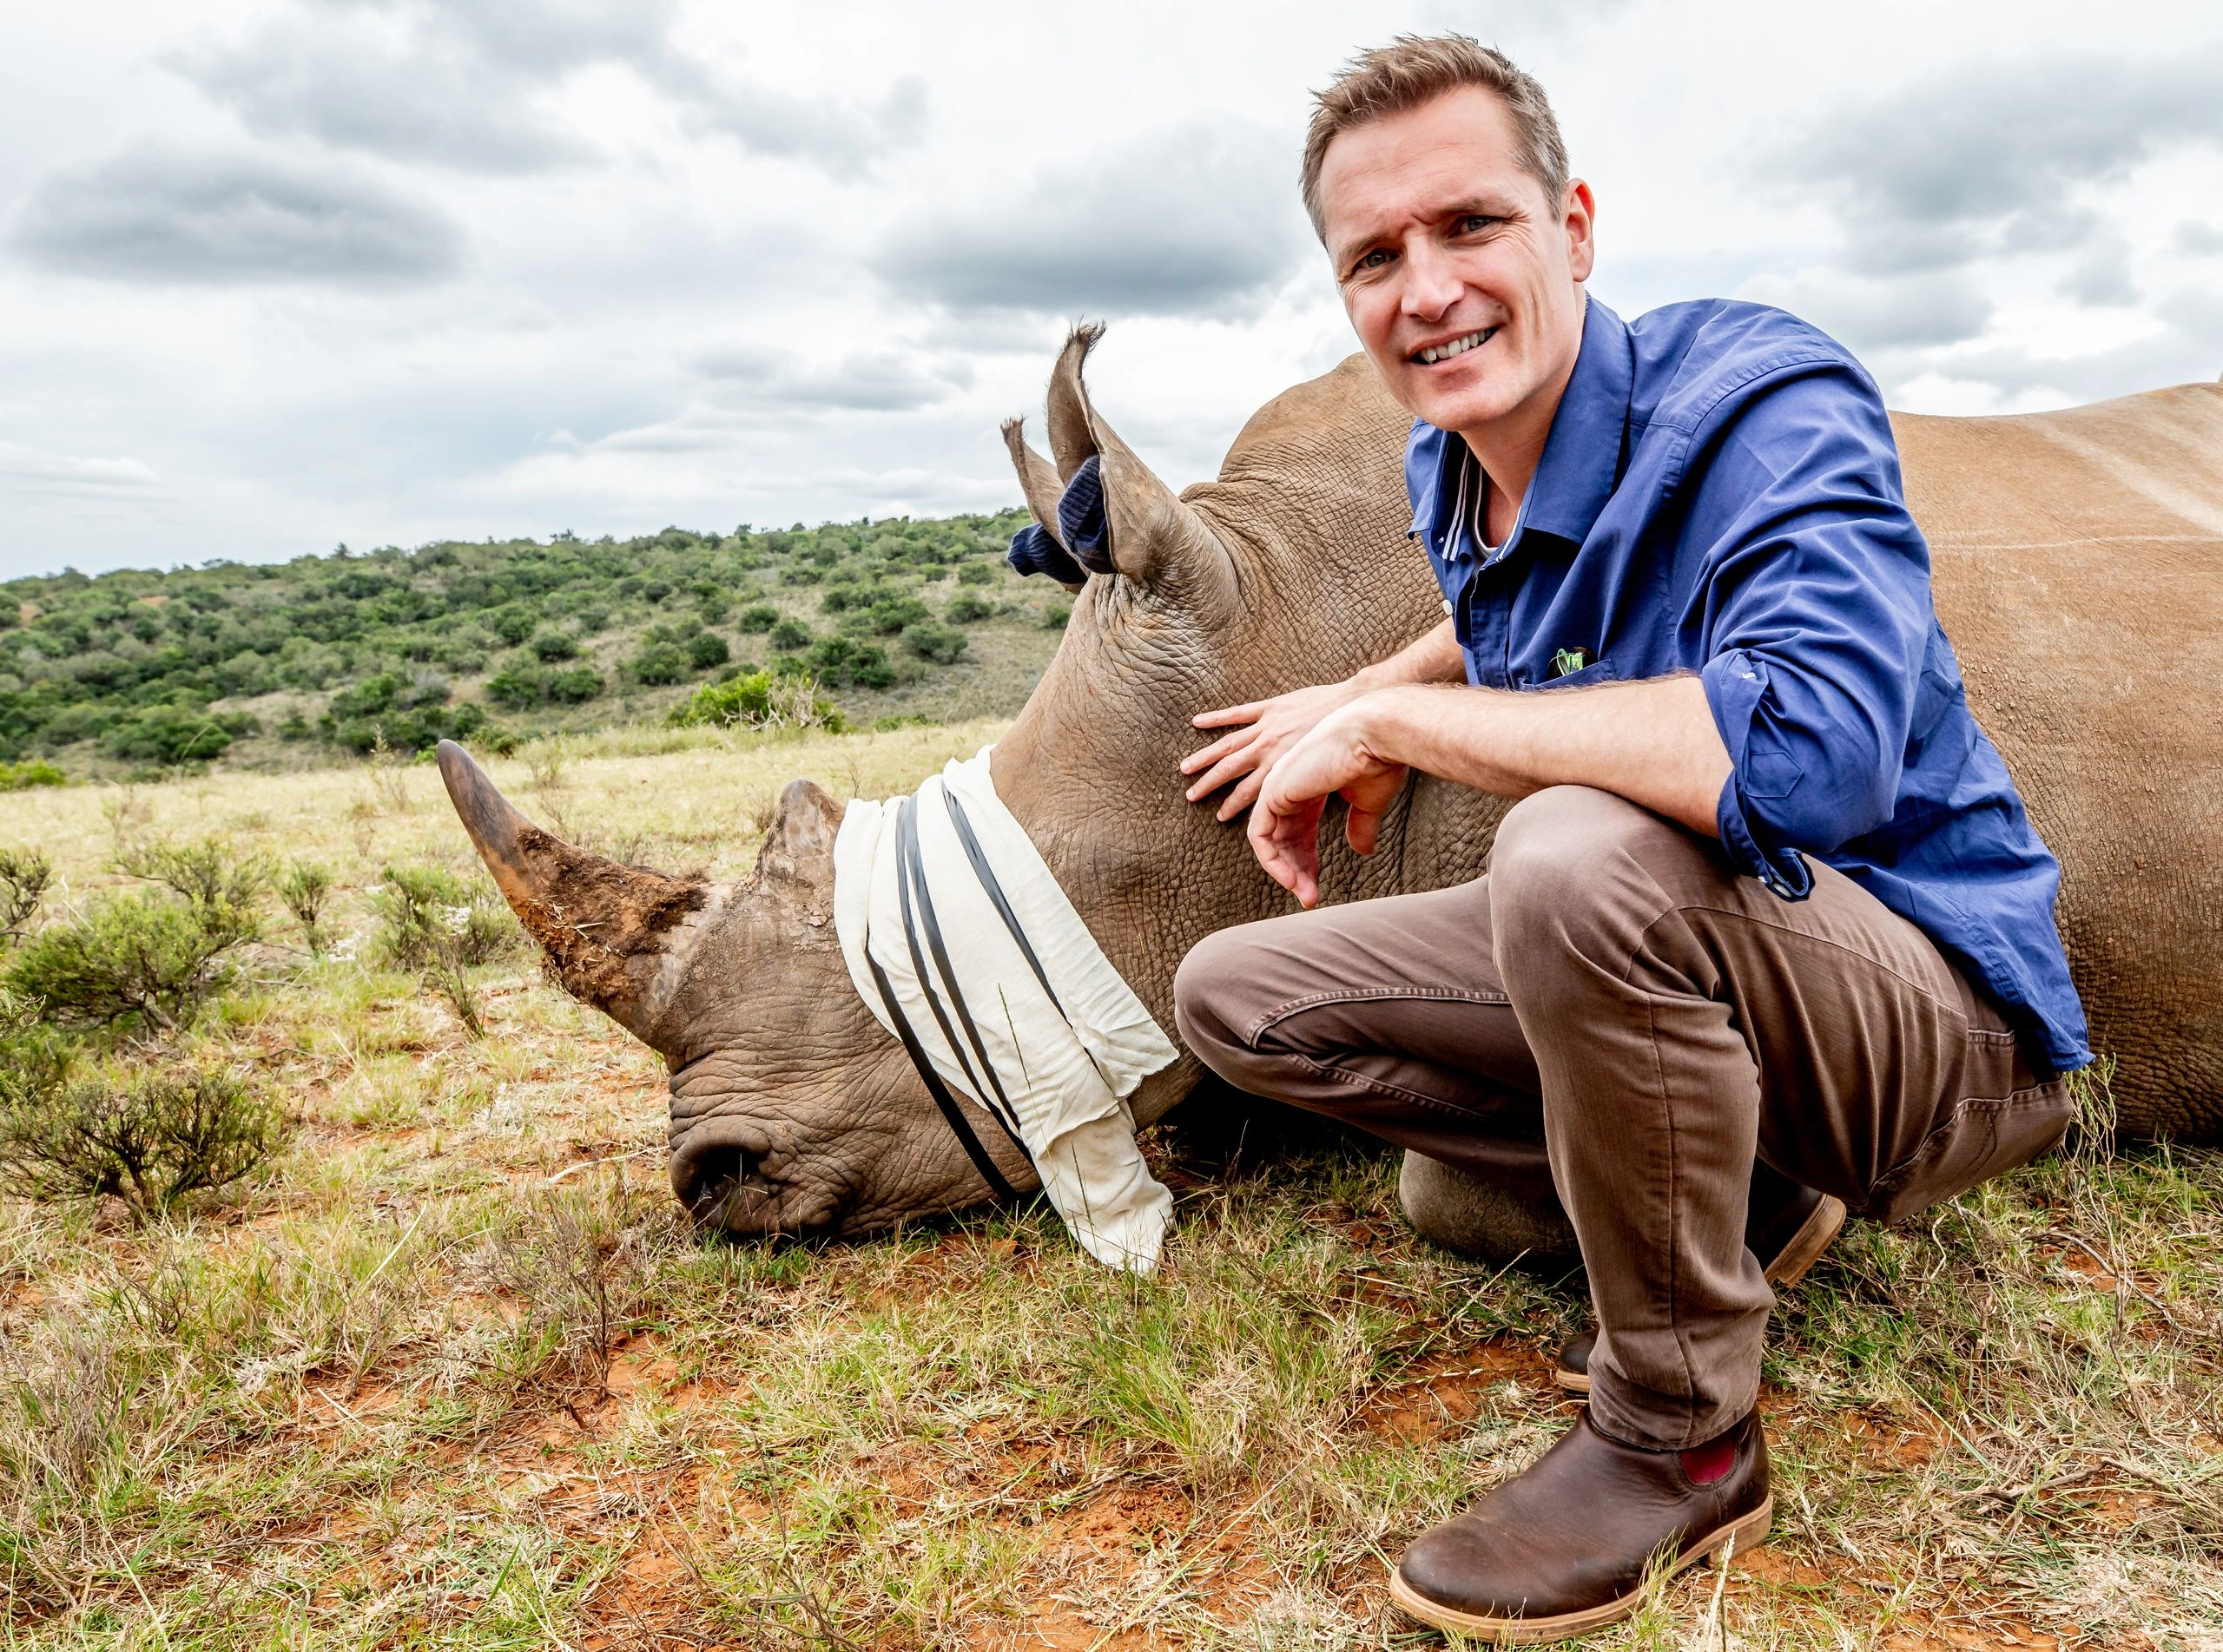 Rhino Encounter in South Africa's Eastern Cape, helping to deter the poachers